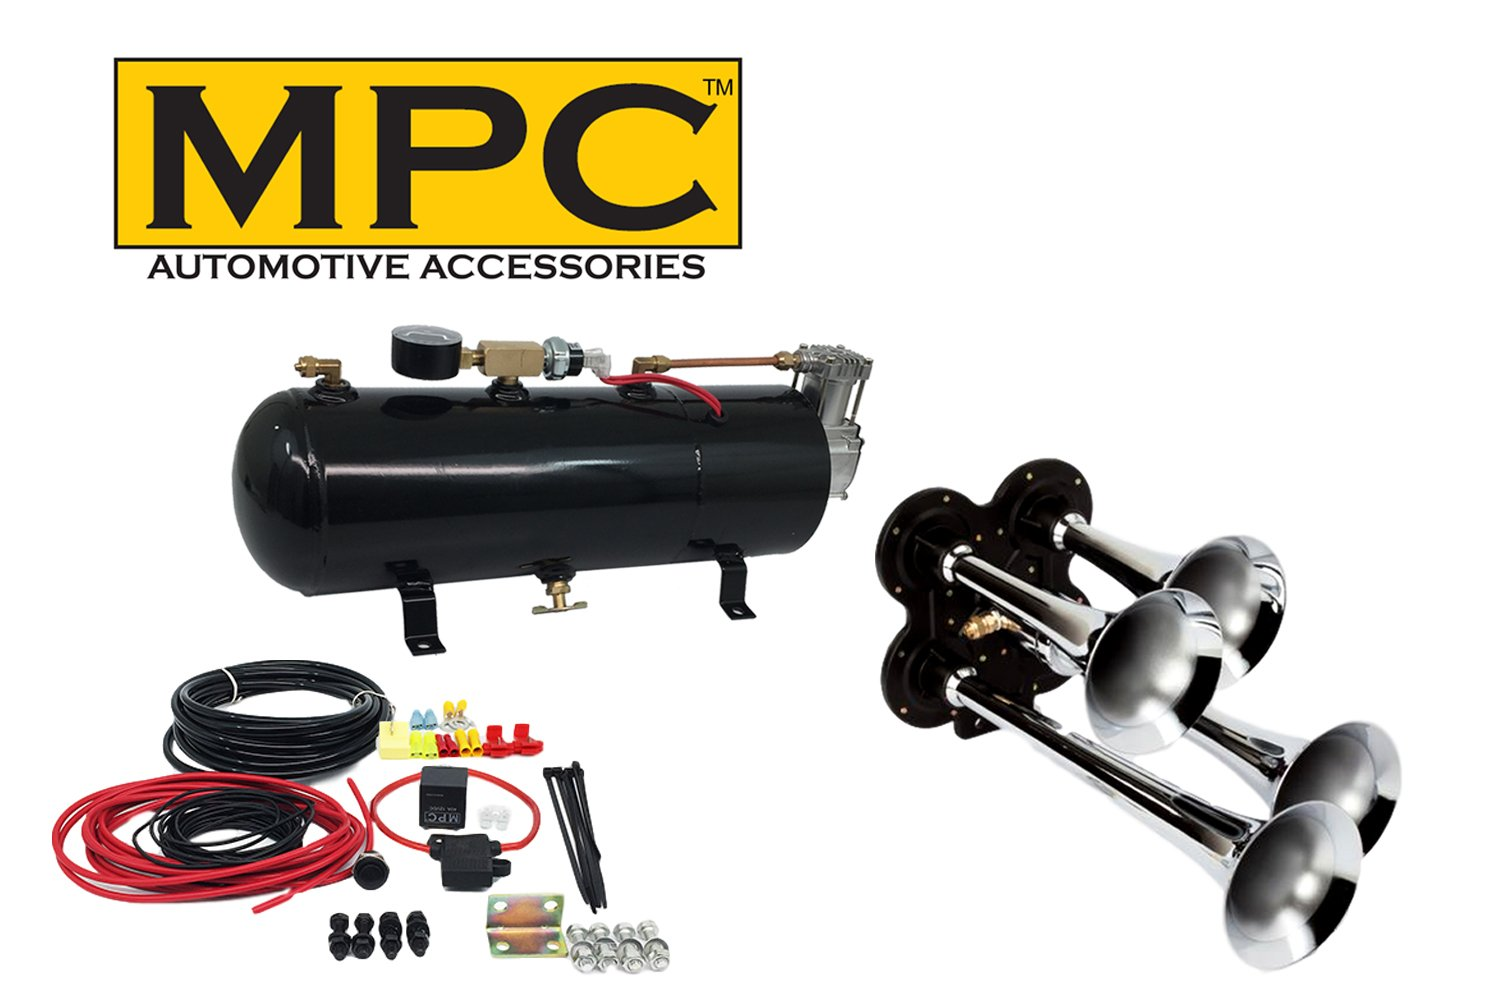 MPC B1 (0419) 4 Trumpet Train Air Horn Kit, Fits Almost Any Vehicle, Truck, Car, Jeep or SUV by MPC